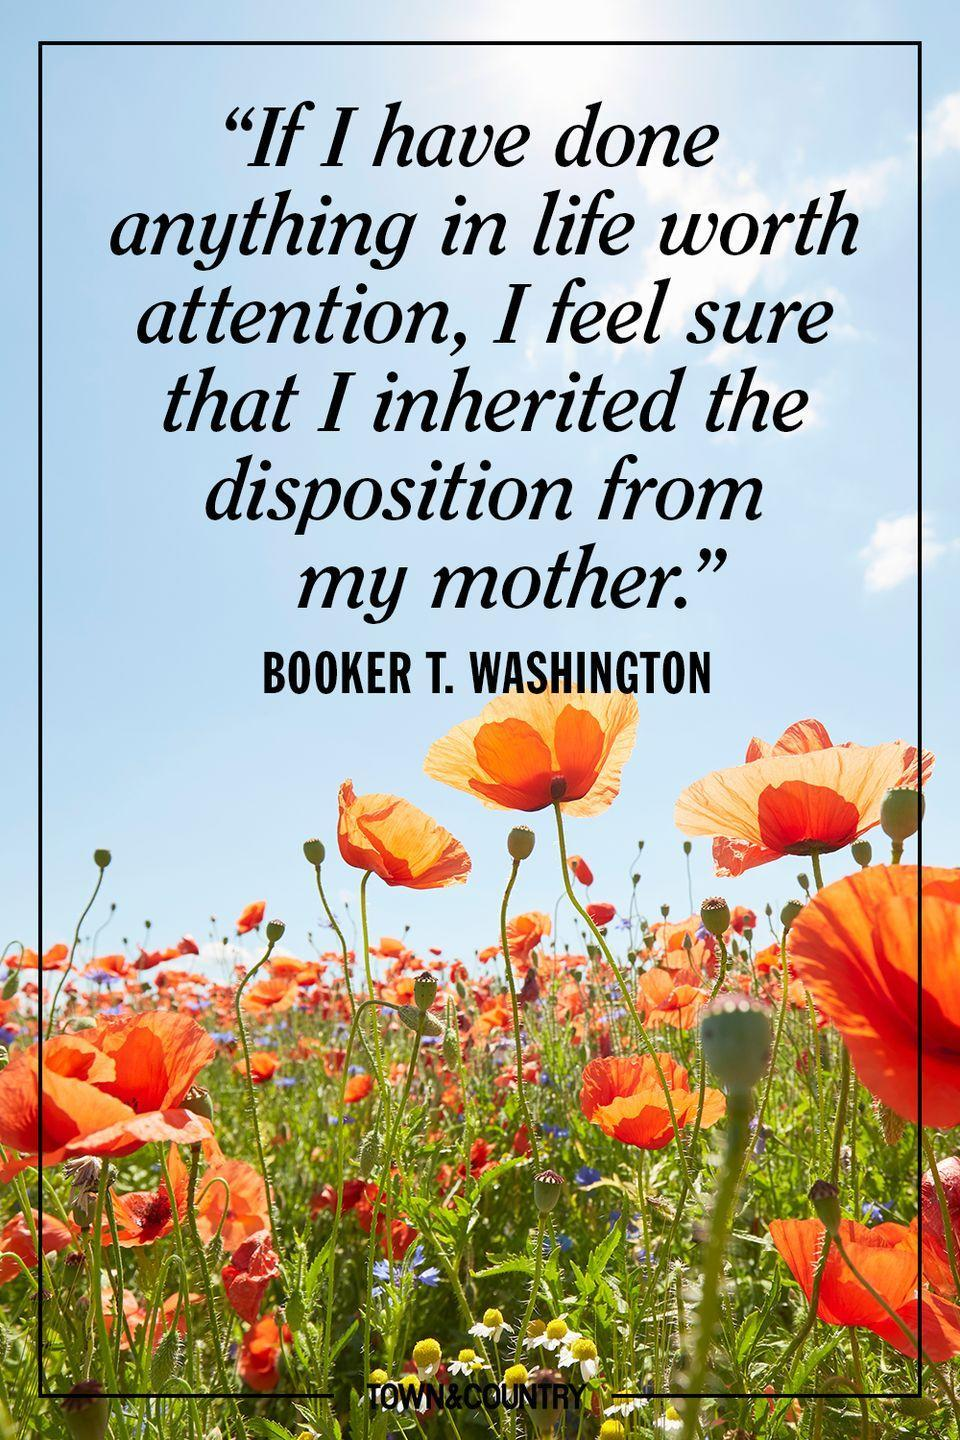 """<p>""""If I have done anything in life worth attention, I feel sure that I inherited the disposition from my mother."""" </p><p>- Booker T. Washington</p>"""